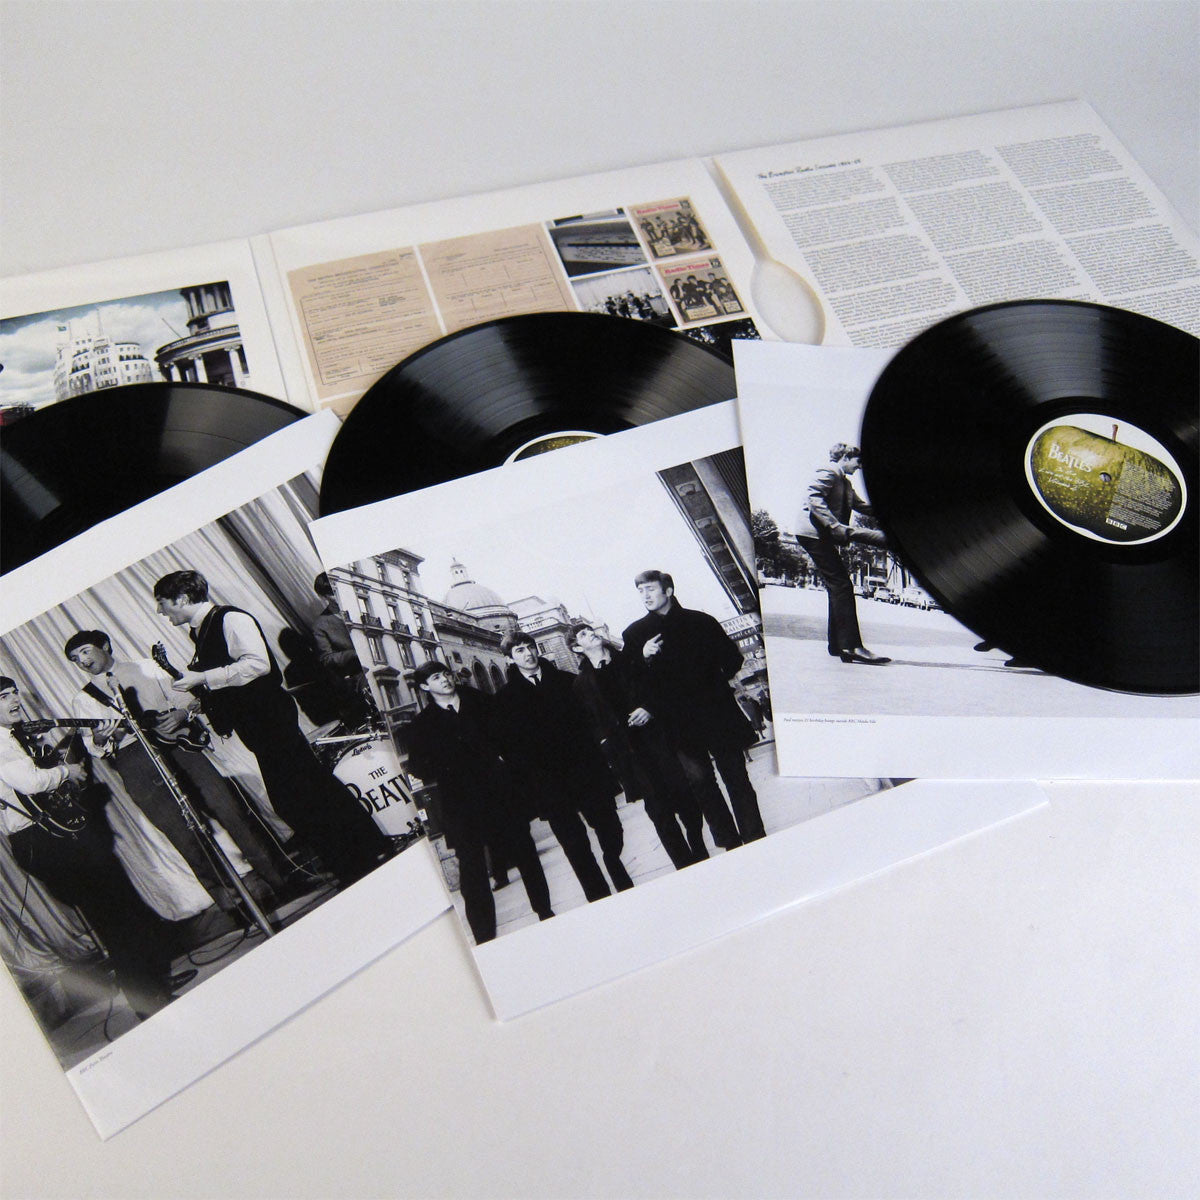 The Beatles: On Air - Live at the BBC Vol. 2 3LP gatefold